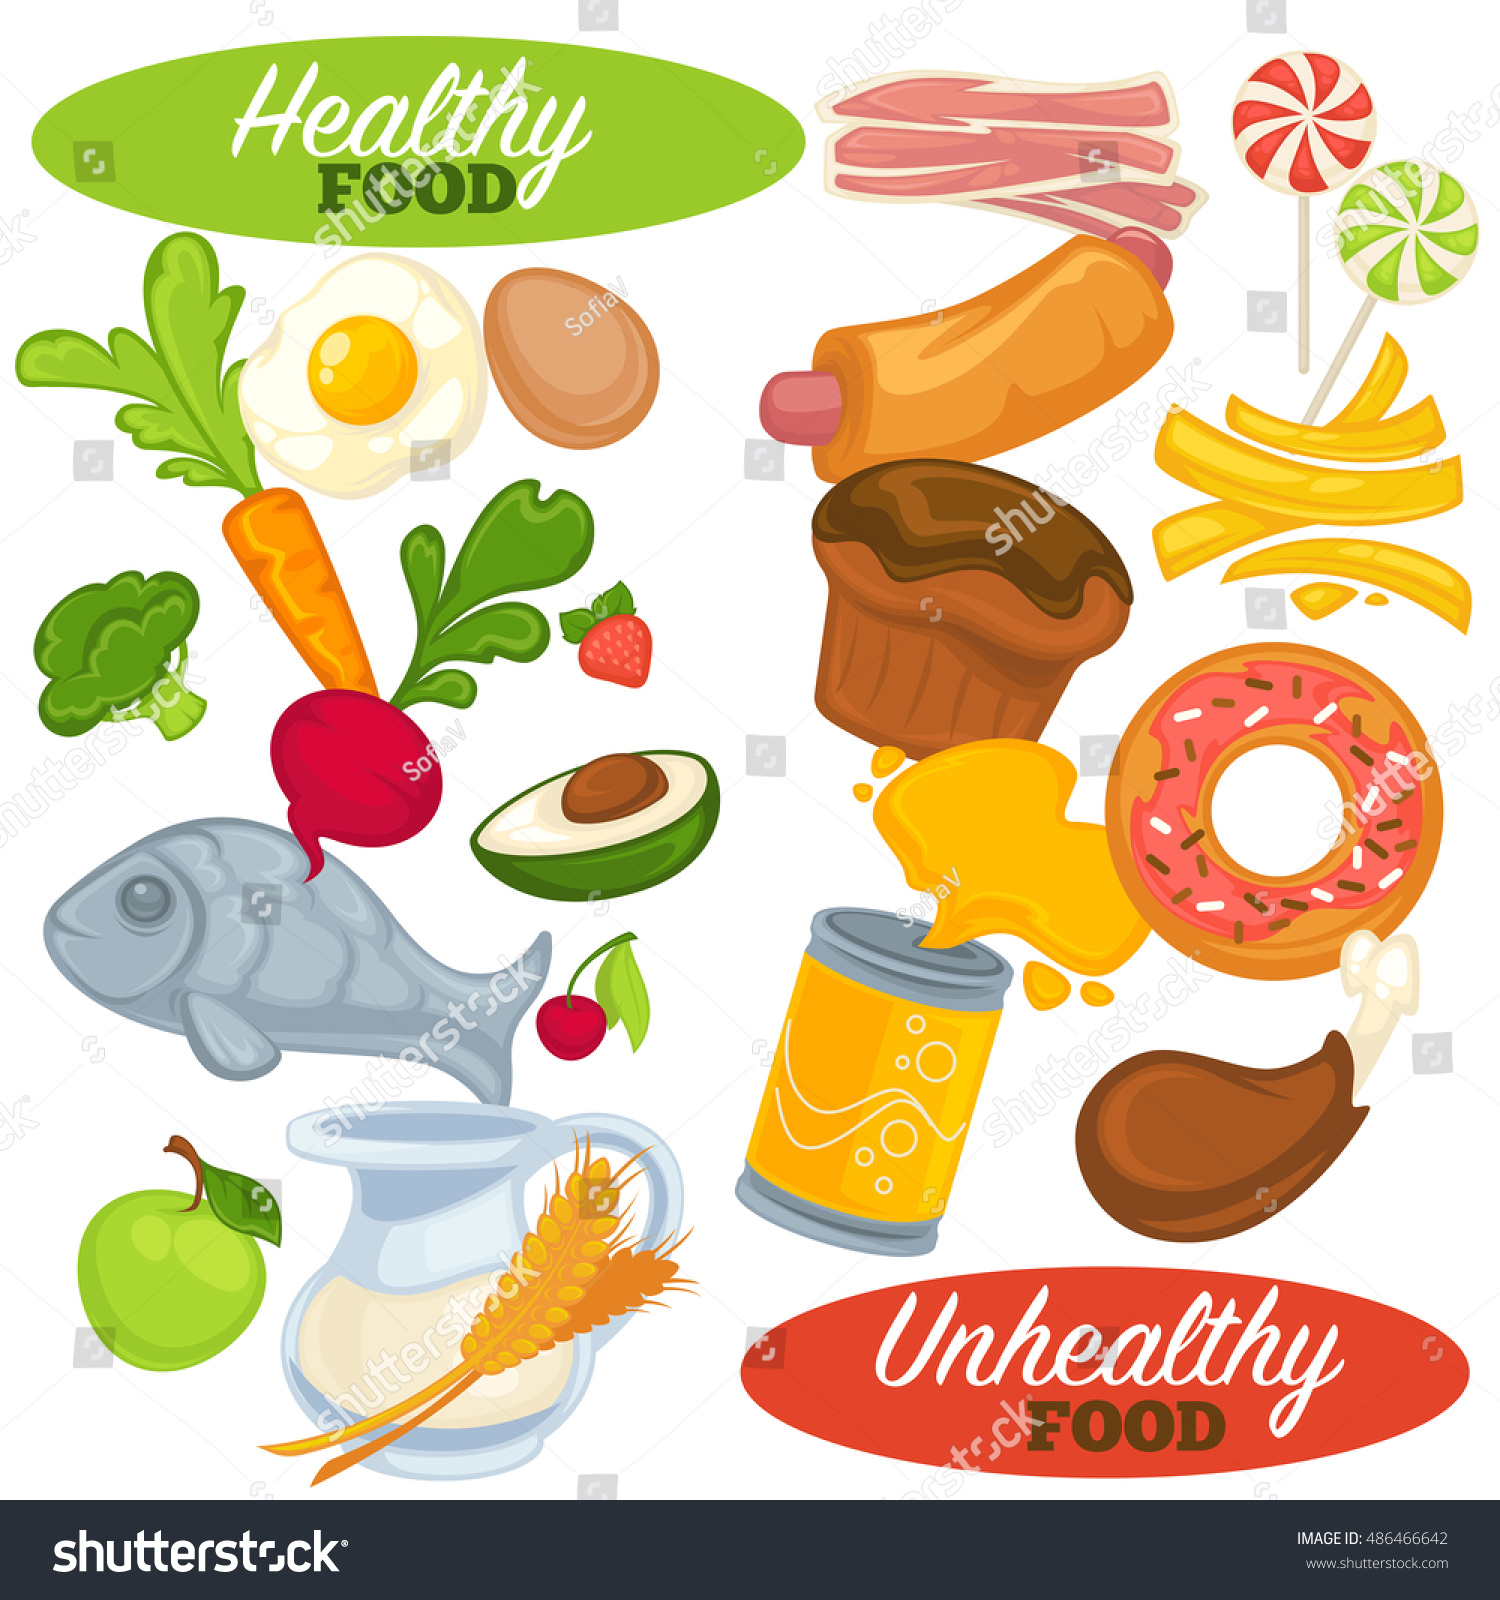 Healthy Unhealthy Food Set Icons Fast Stock Vector